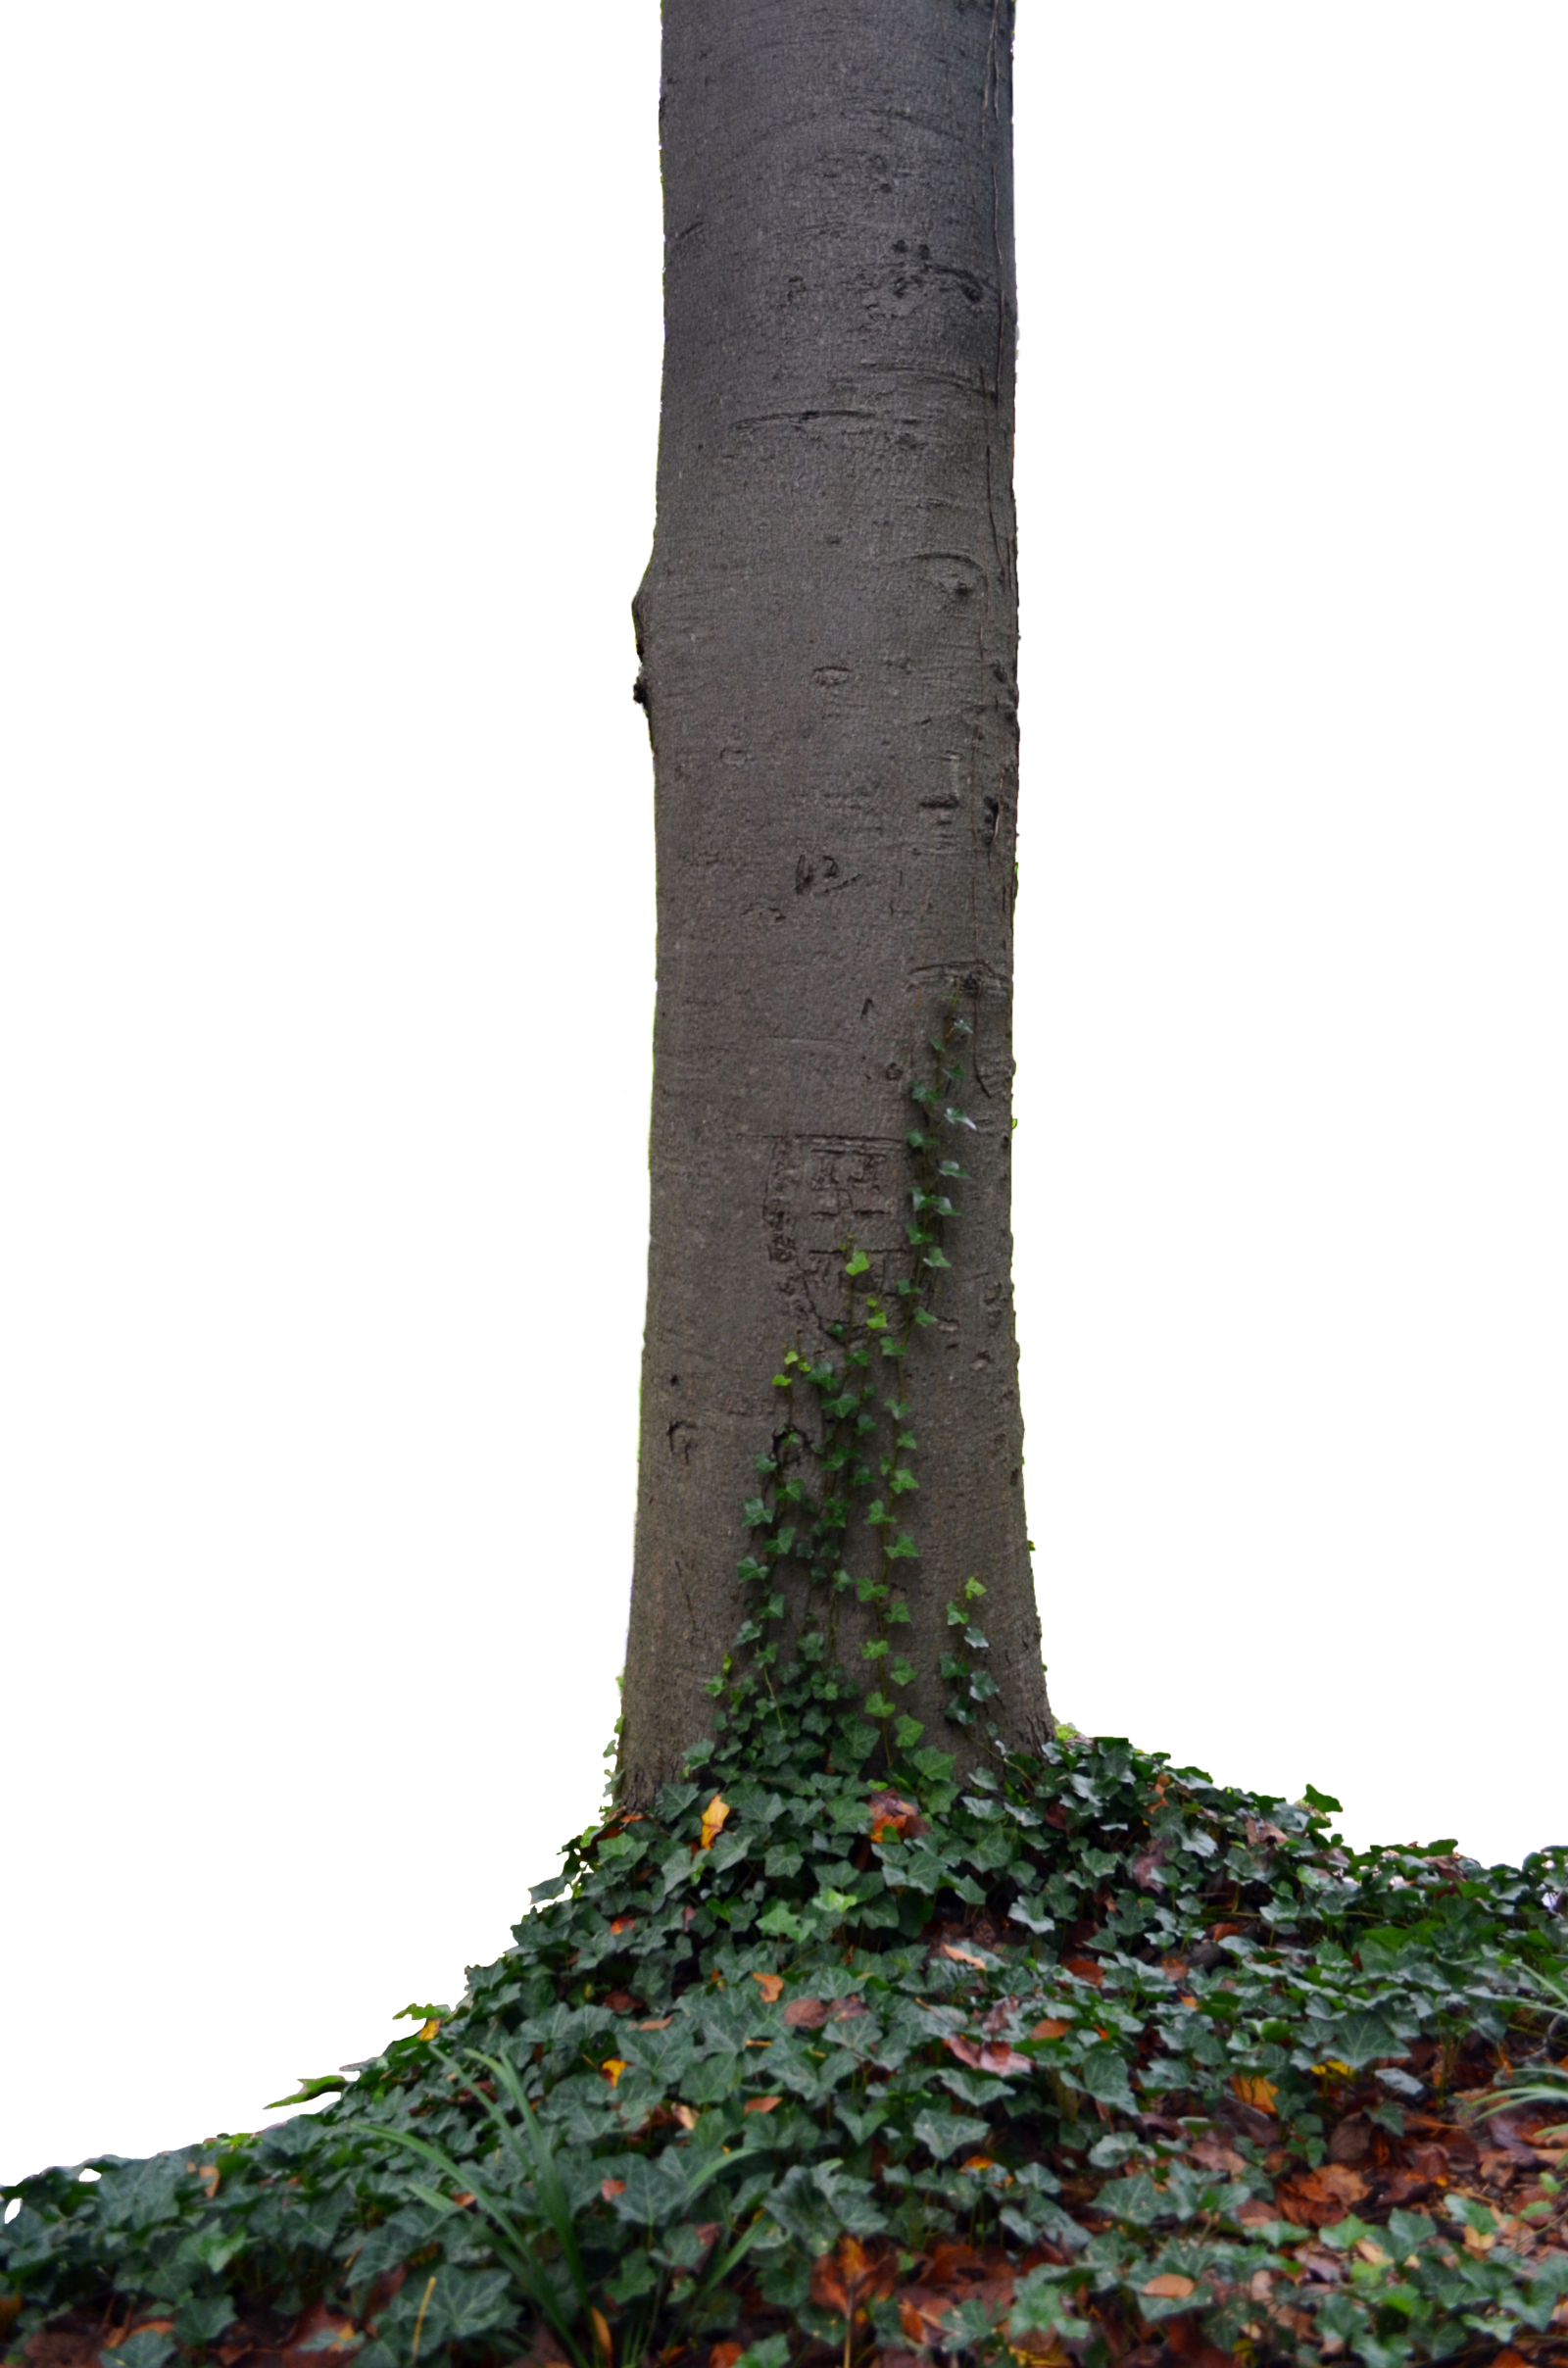 . PlusPng.com Tree Trunk With Ivy Stock Photo TALL DSC 0140 PNG By Annamae22 - PNG Tree Trunk